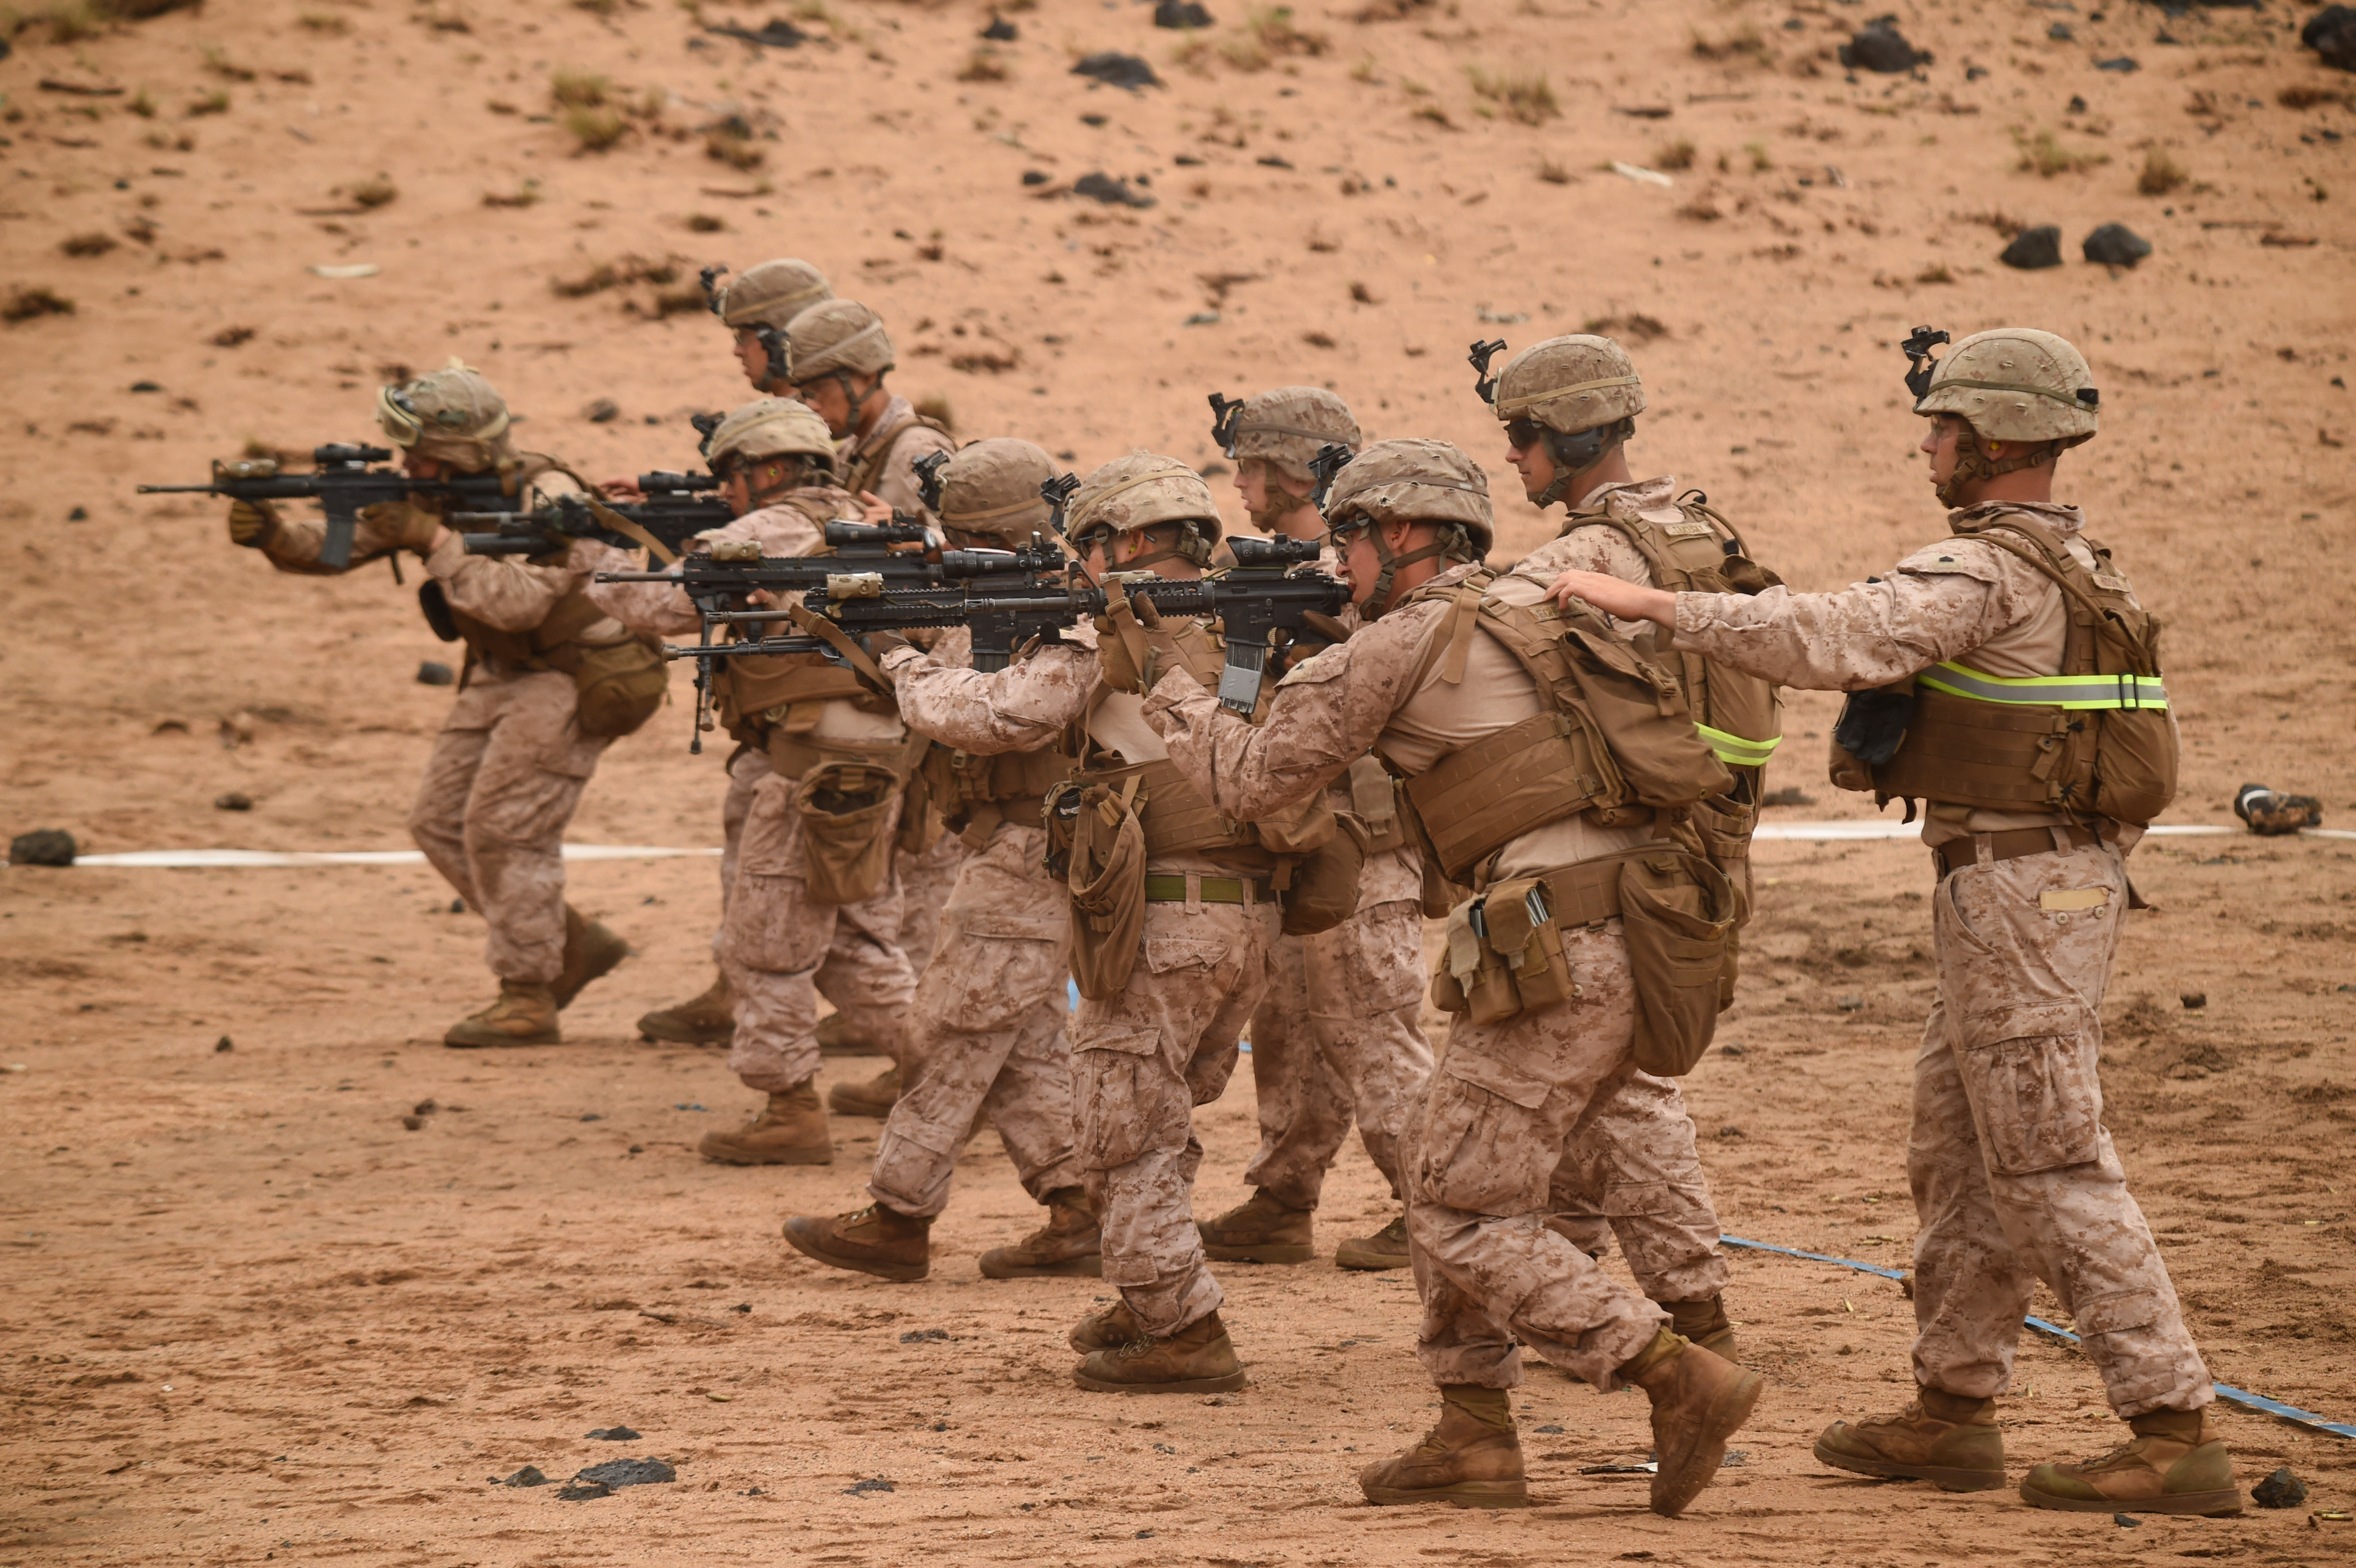 U.S. Marines with Alpha Company, 1st Battalion, 11th Marine Expeditionary Unit (MEU), move downrange while being guided during a Combat Marksmanship Program shoot, Feb. 14, 2017, at Arta Beach in Djibouti. Marines worked on engaging a target while moving and under physical stress. The time on the range allows the 11th MEU to maintain their respective skills and proficiencies. (U.S. Air National Guard photo by Staff Sgt. Penny Snoozy)